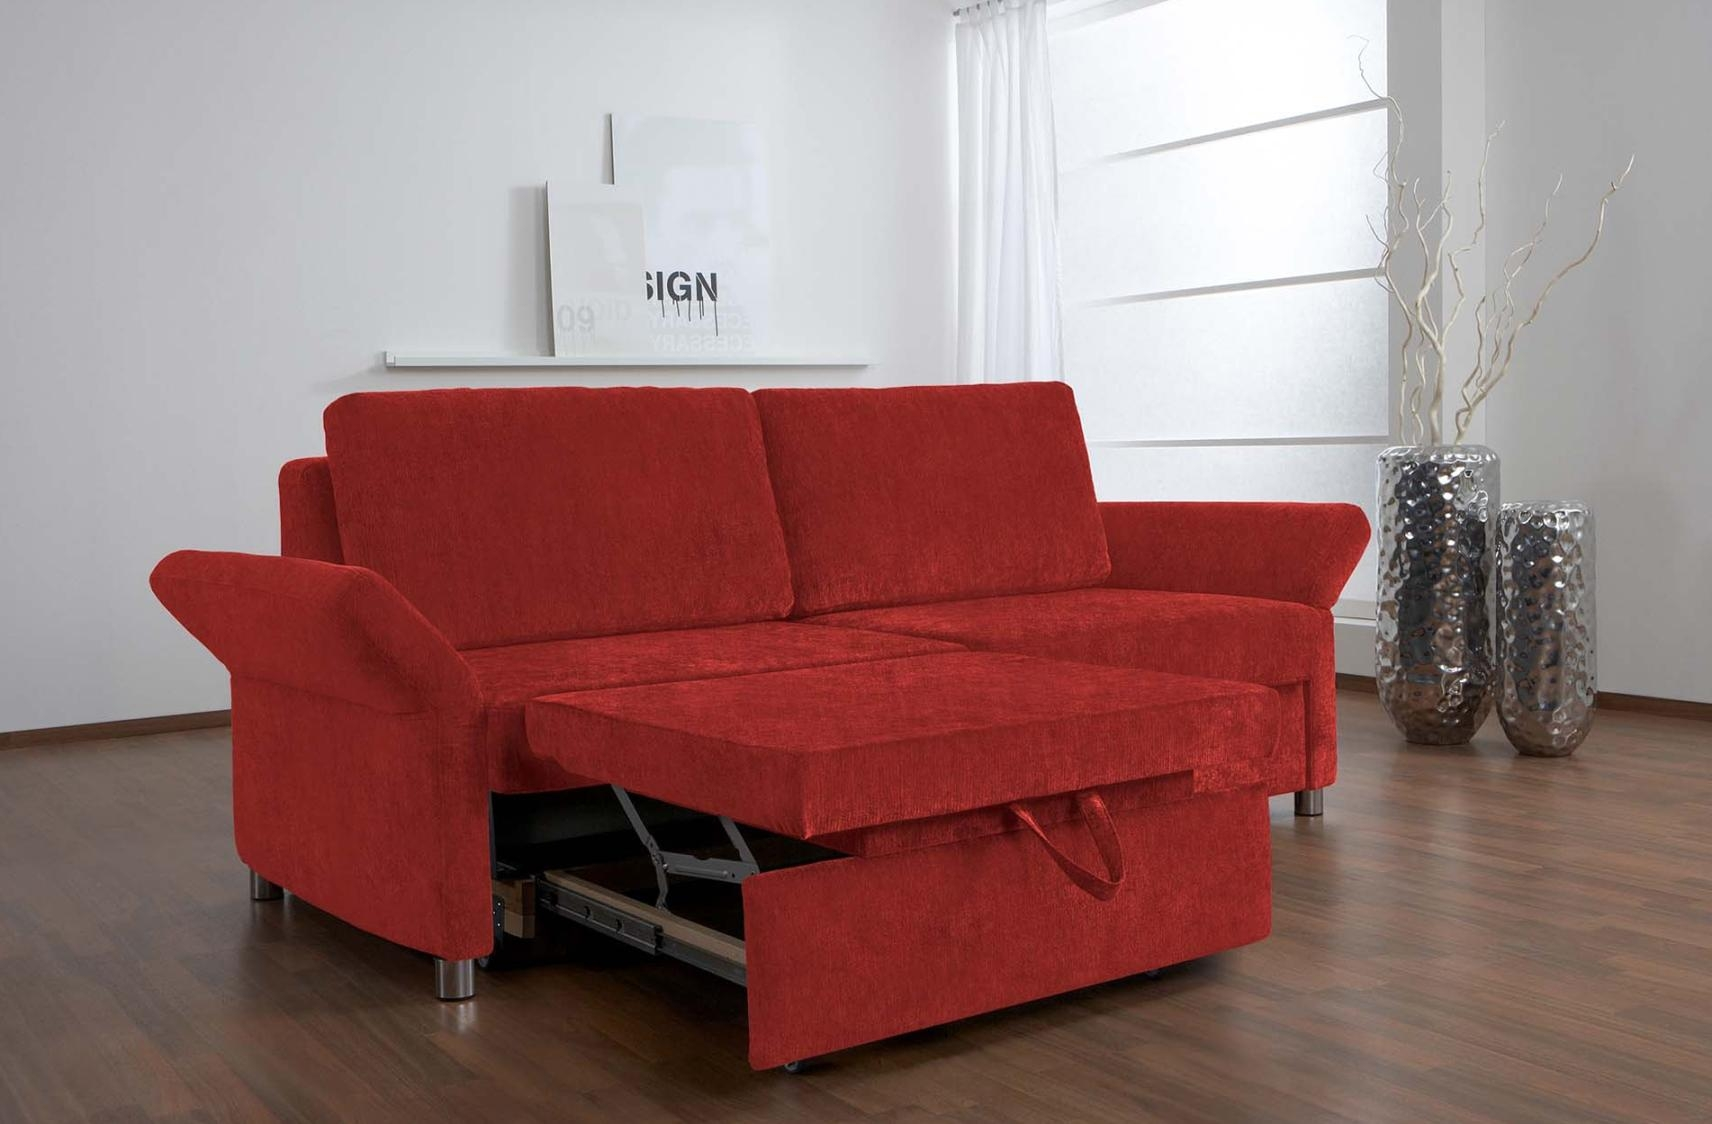 Essen Sleeper Sofa – The Best Pull Out Sofa Bednordholtz For Red Sleeper Sofa (Image 4 of 20)